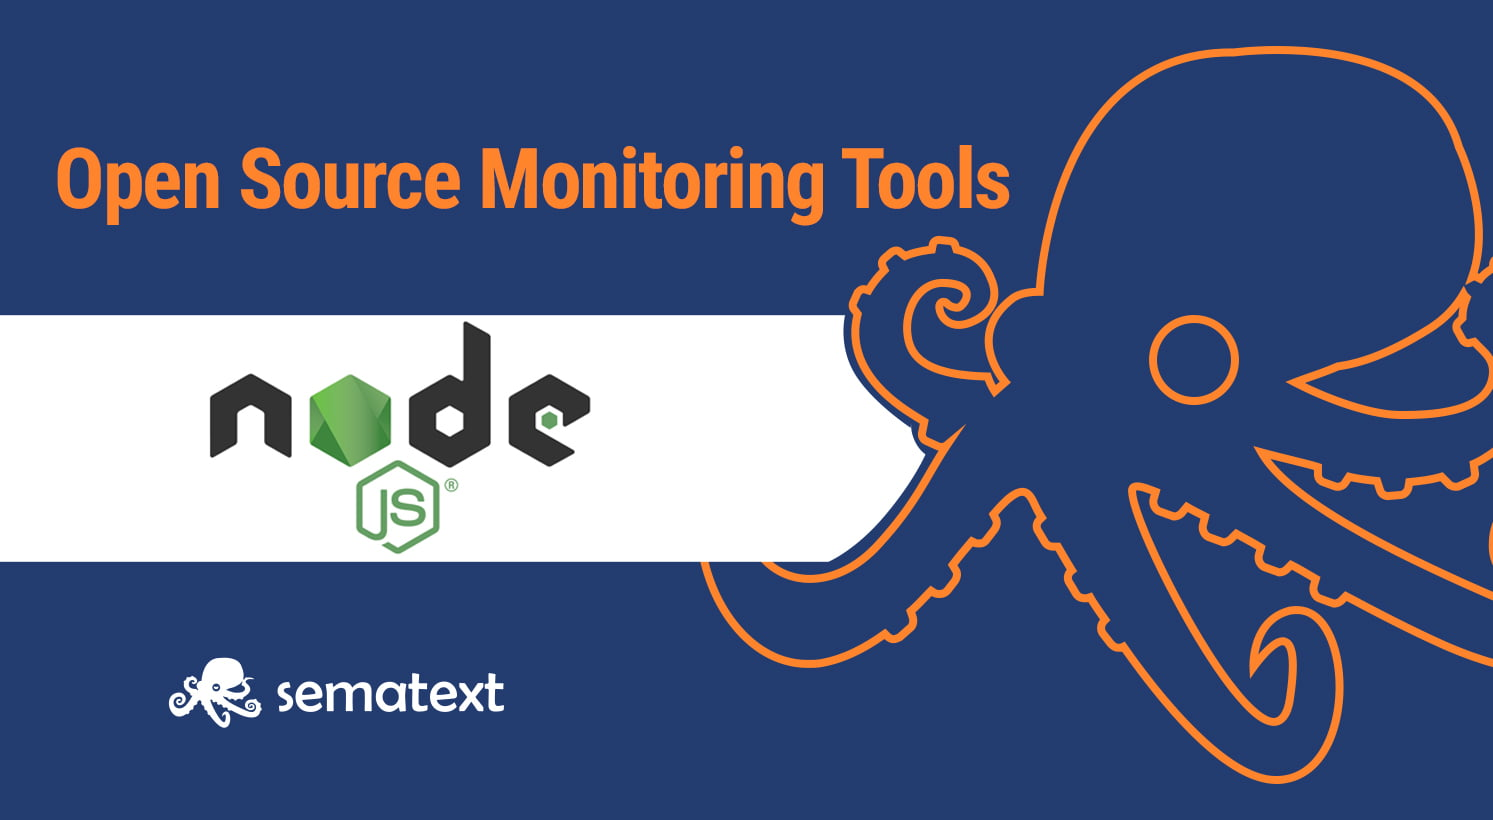 Node.js Open Source Monitoring Tools